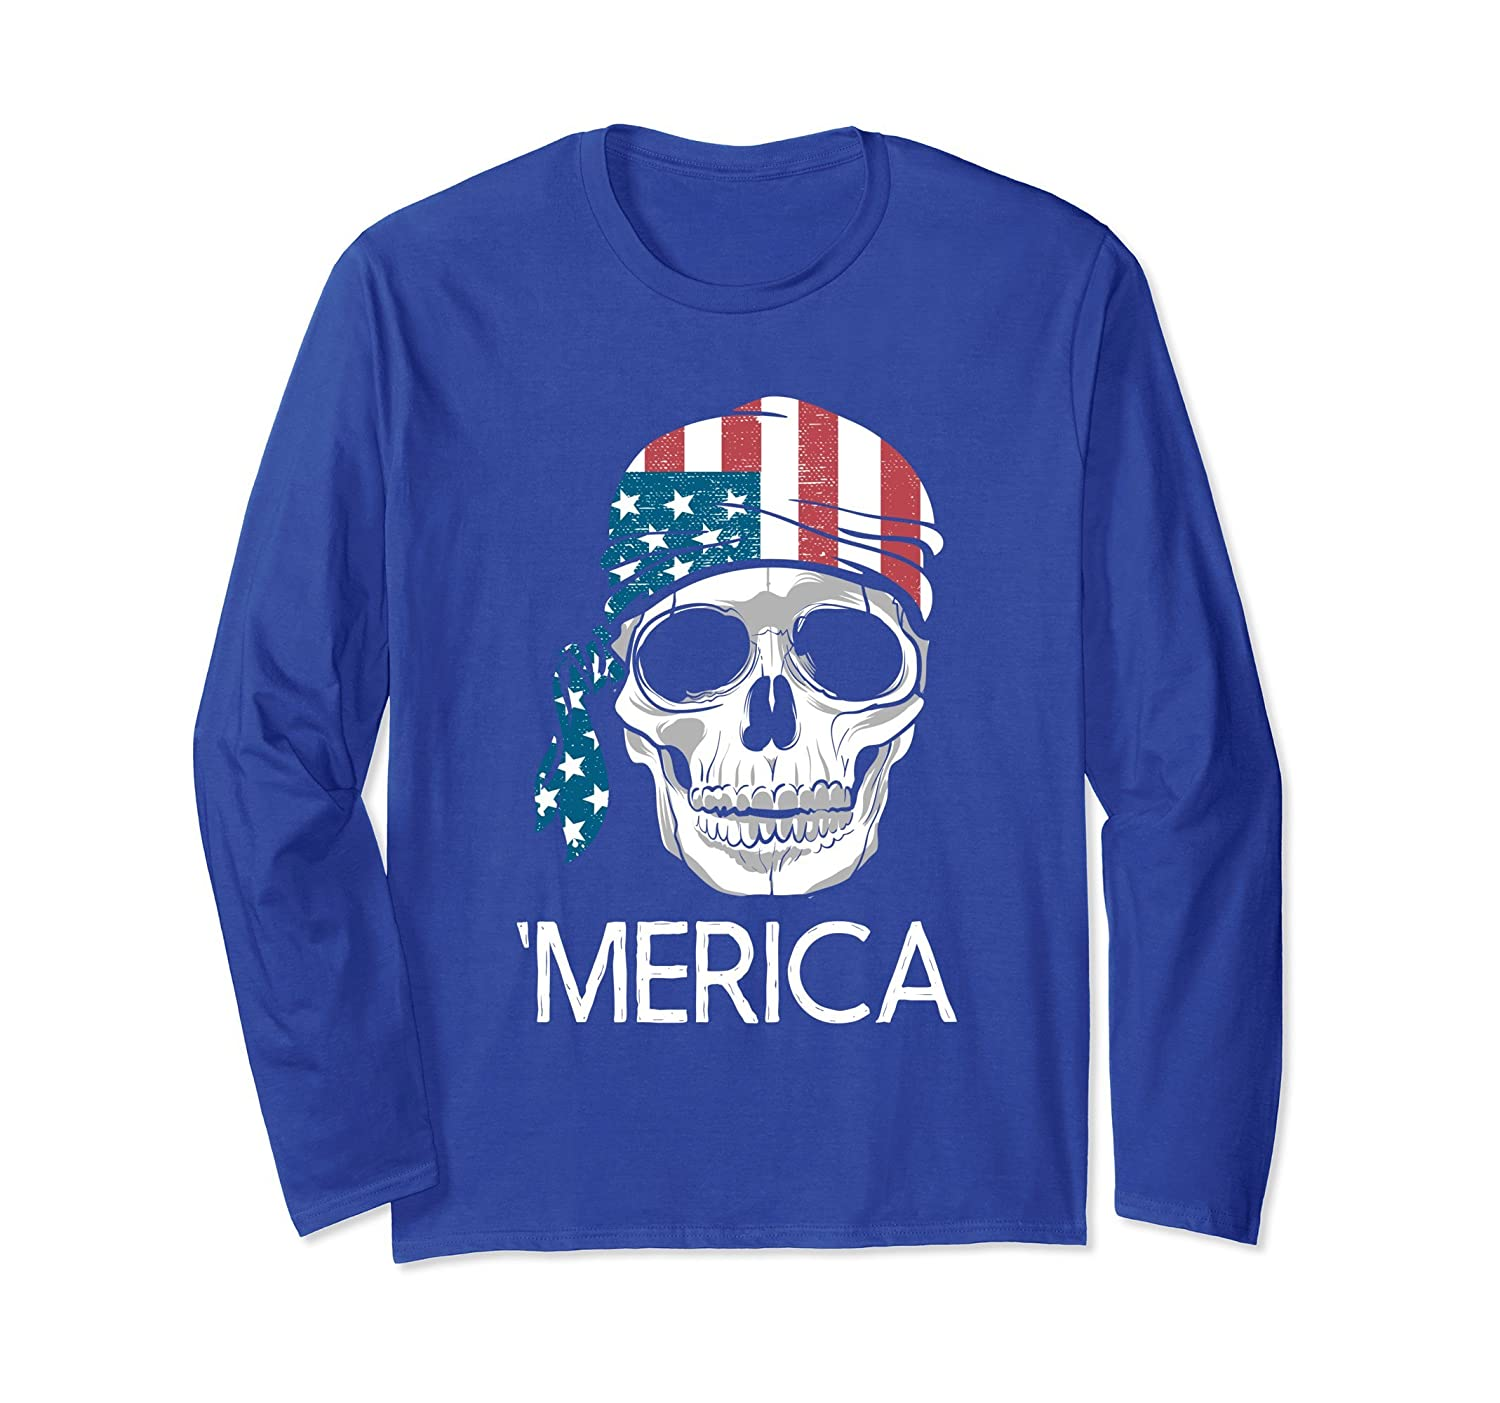 'Merica - US Flag Skull - Long Sleeve Shirt For Women Or Men-mt